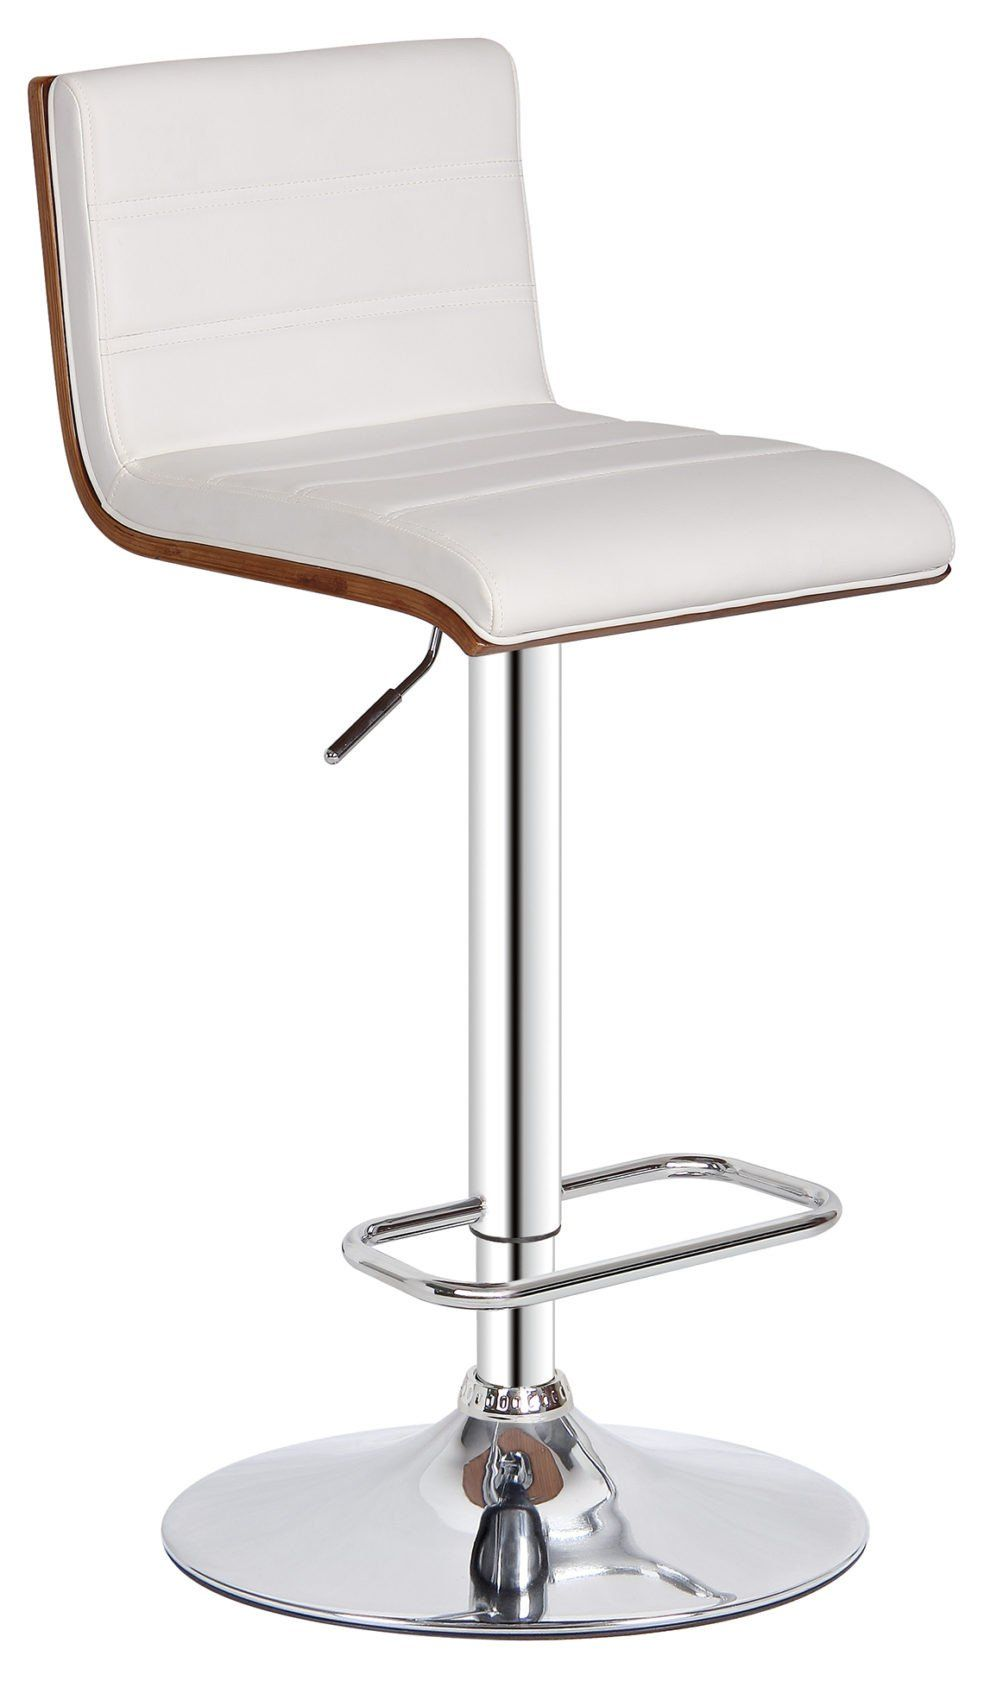 Terrific Bromi Design Bf2410Wh Lexi Adjustable Hegiht Barstool En Caraccident5 Cool Chair Designs And Ideas Caraccident5Info